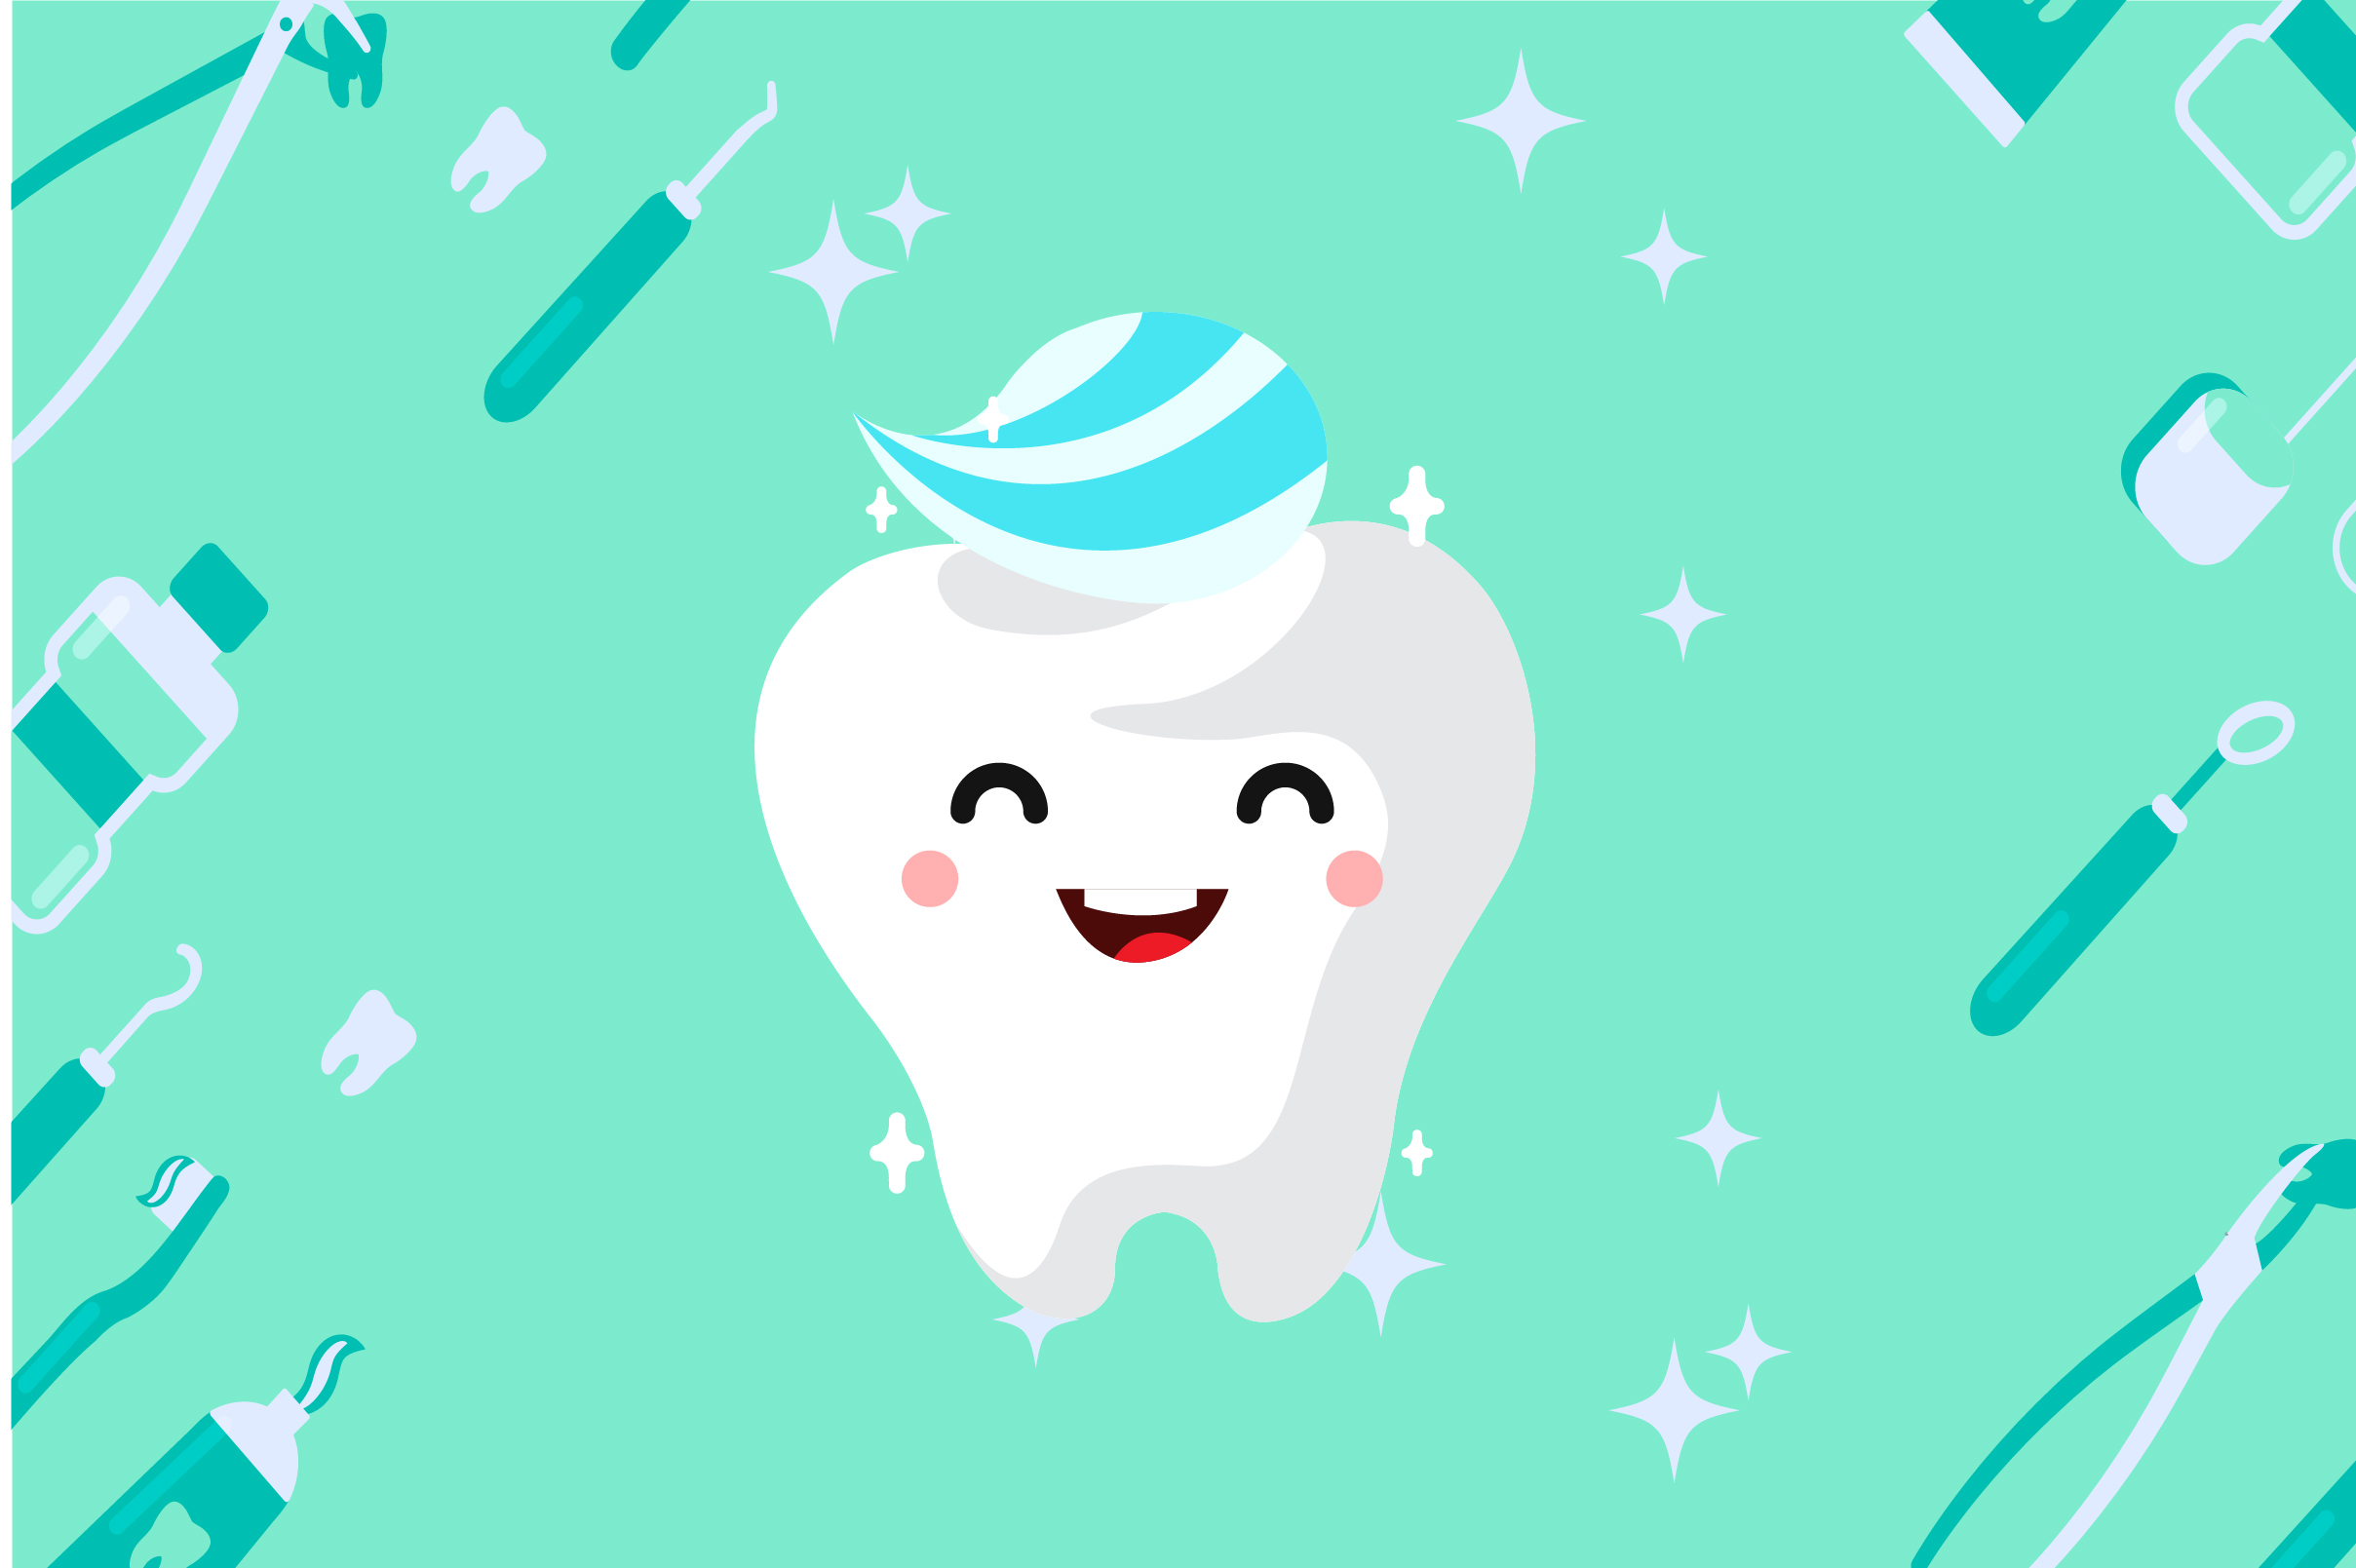 Download Free Healthy Tooth Graphic By Fatih Studio Creative Fabrica for Cricut Explore, Silhouette and other cutting machines.